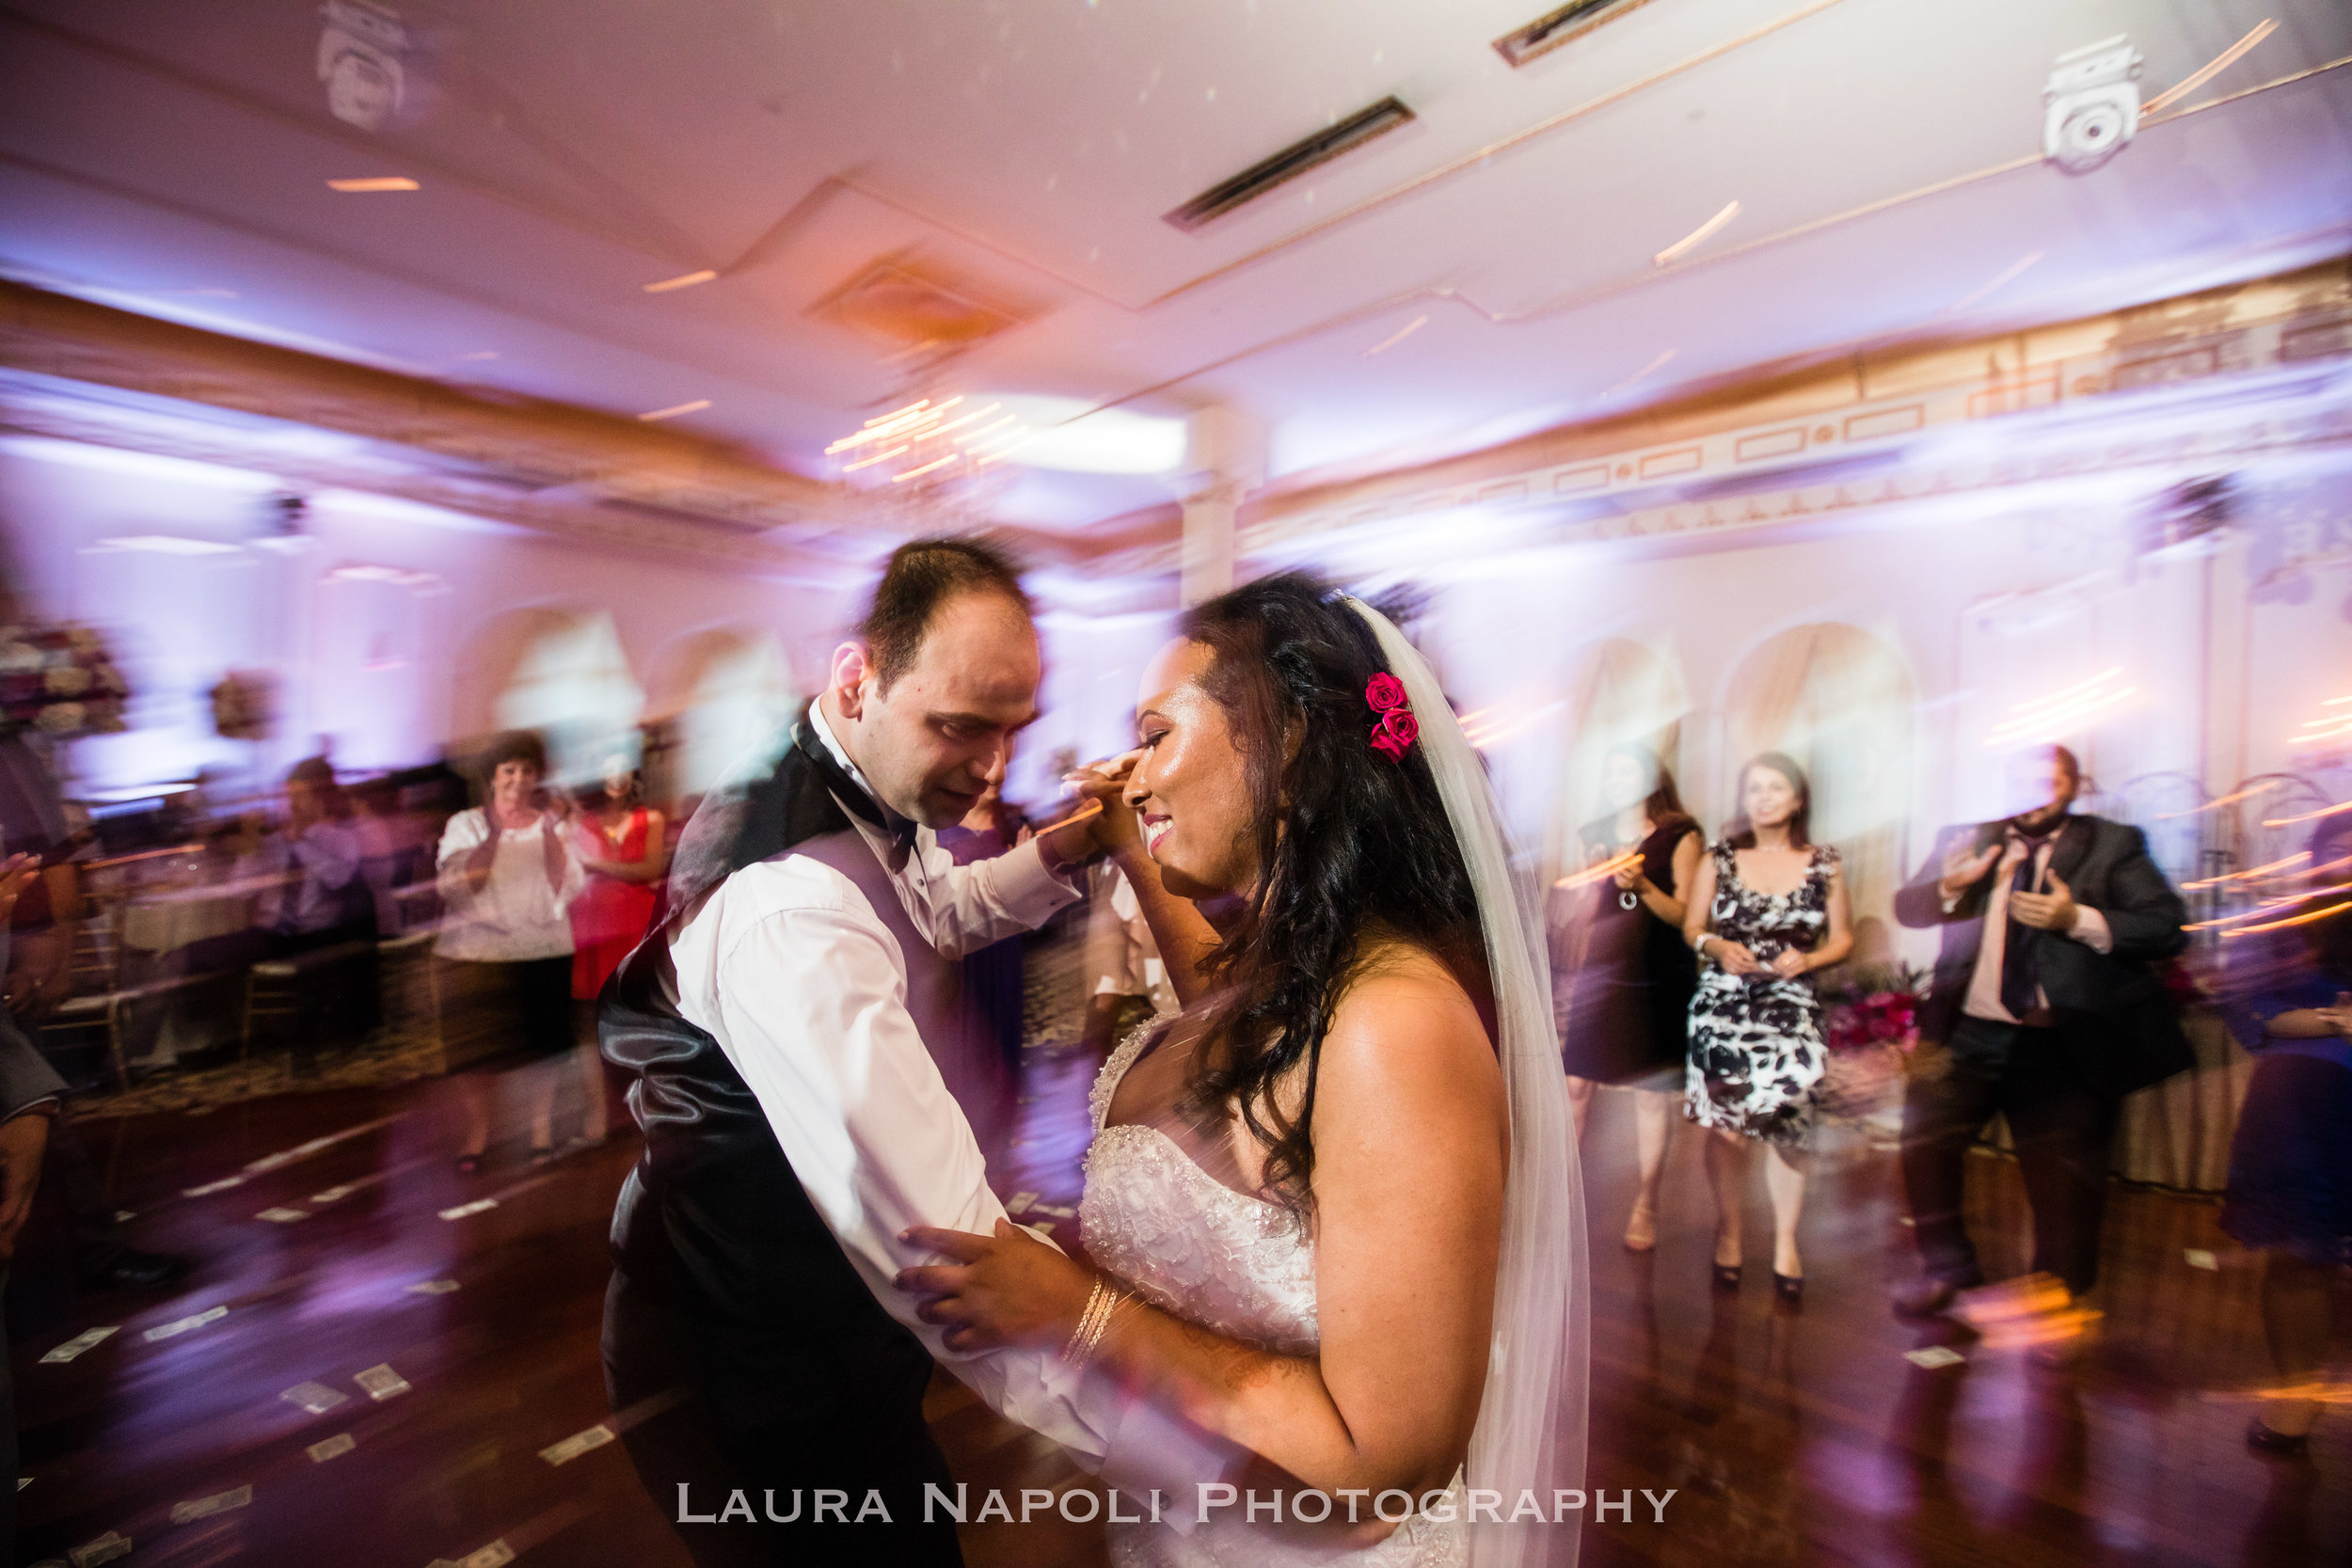 Scotlandrungolfclubweddingsouthjerseyweddingphotographer -42.jpg